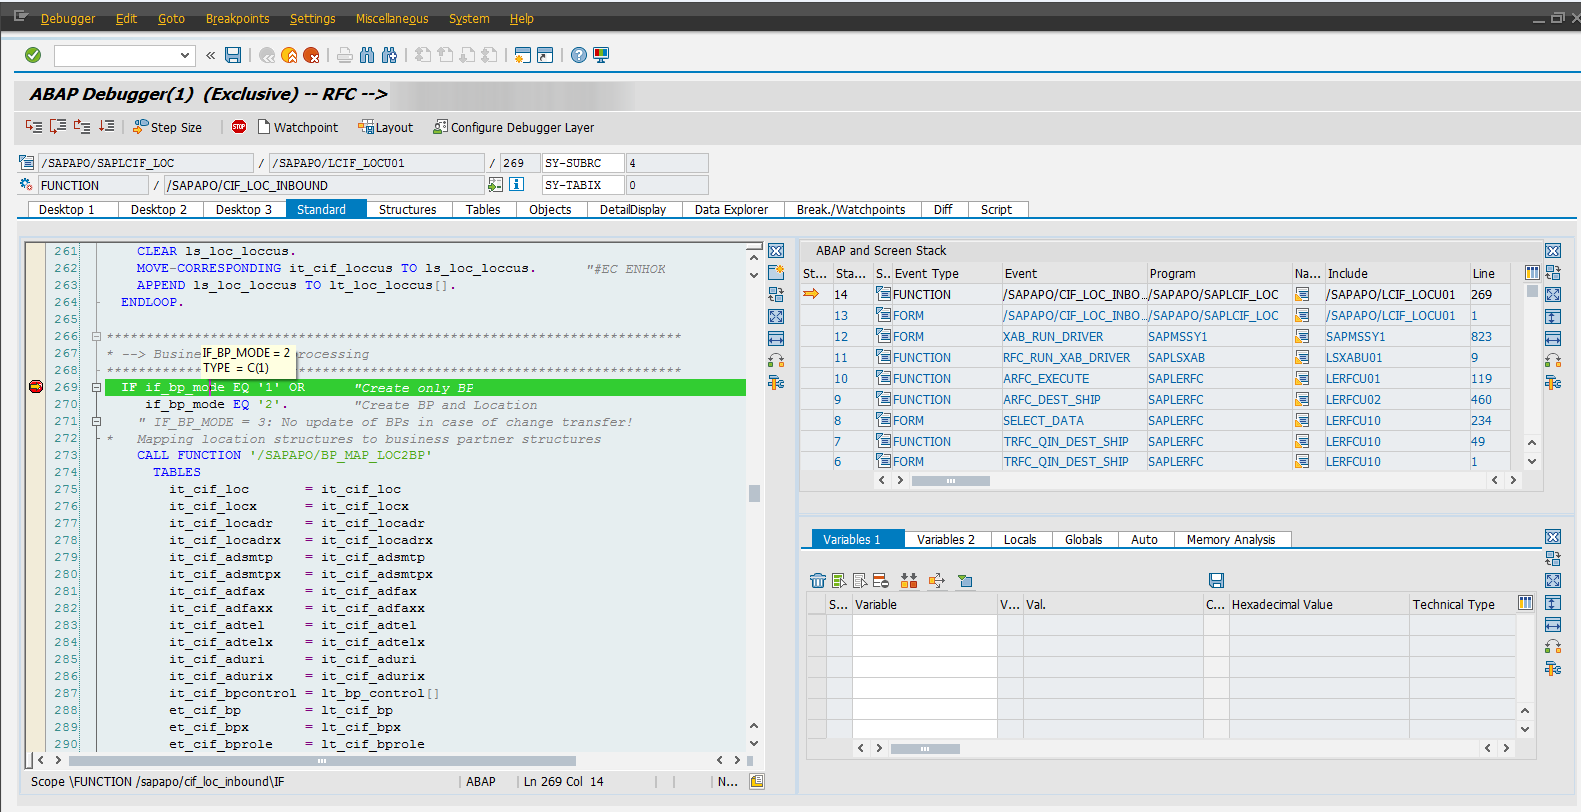 Business Partner and Location integration to SCM via Core